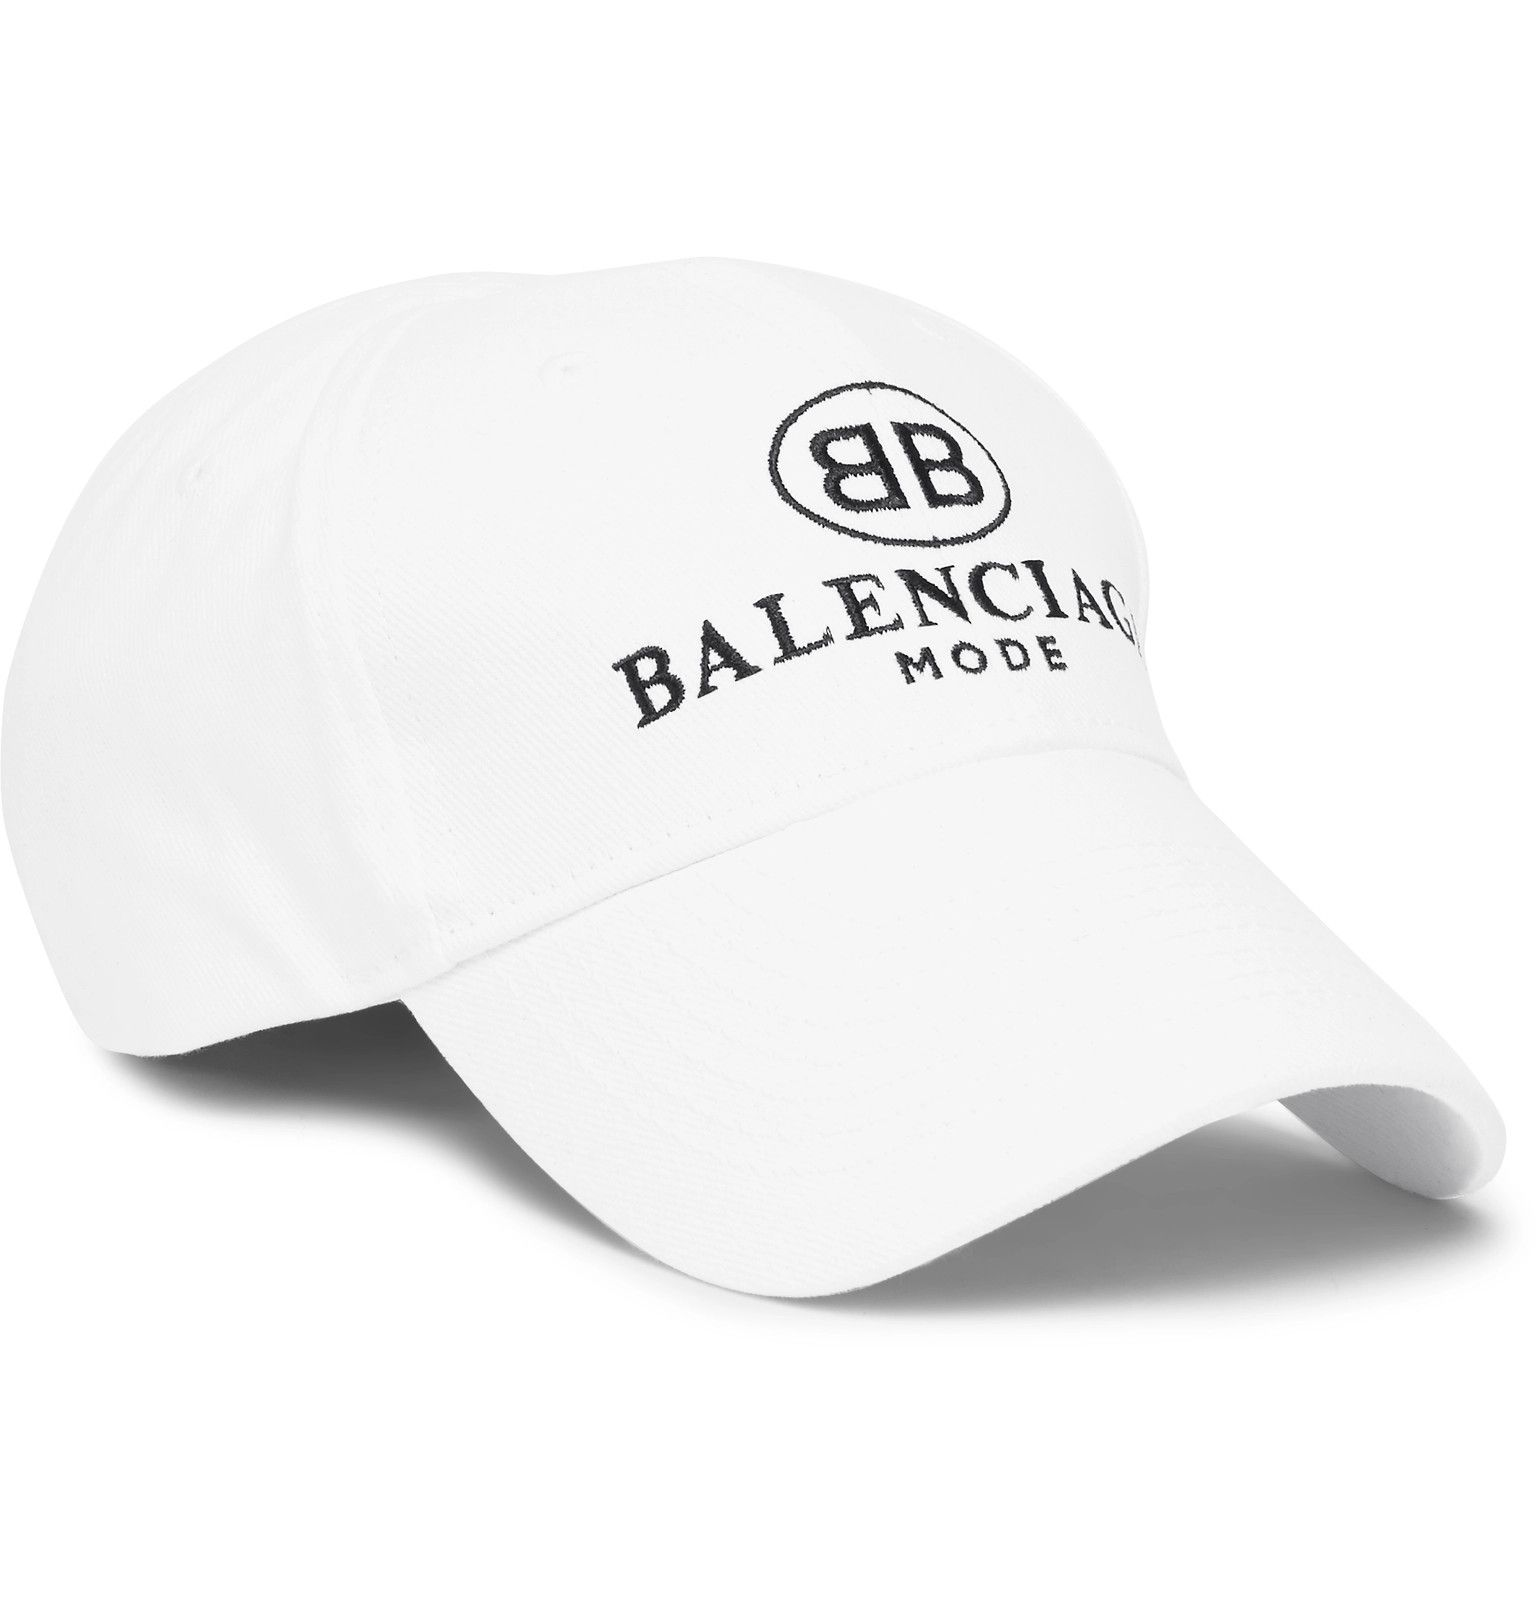 piel maorí verano  Balenciaga's cap is patterned with a double-B monogram and the brand's  emblem in an indistinct font that alludes to retro designer… | Cotton  twill, Cap, Hat designs